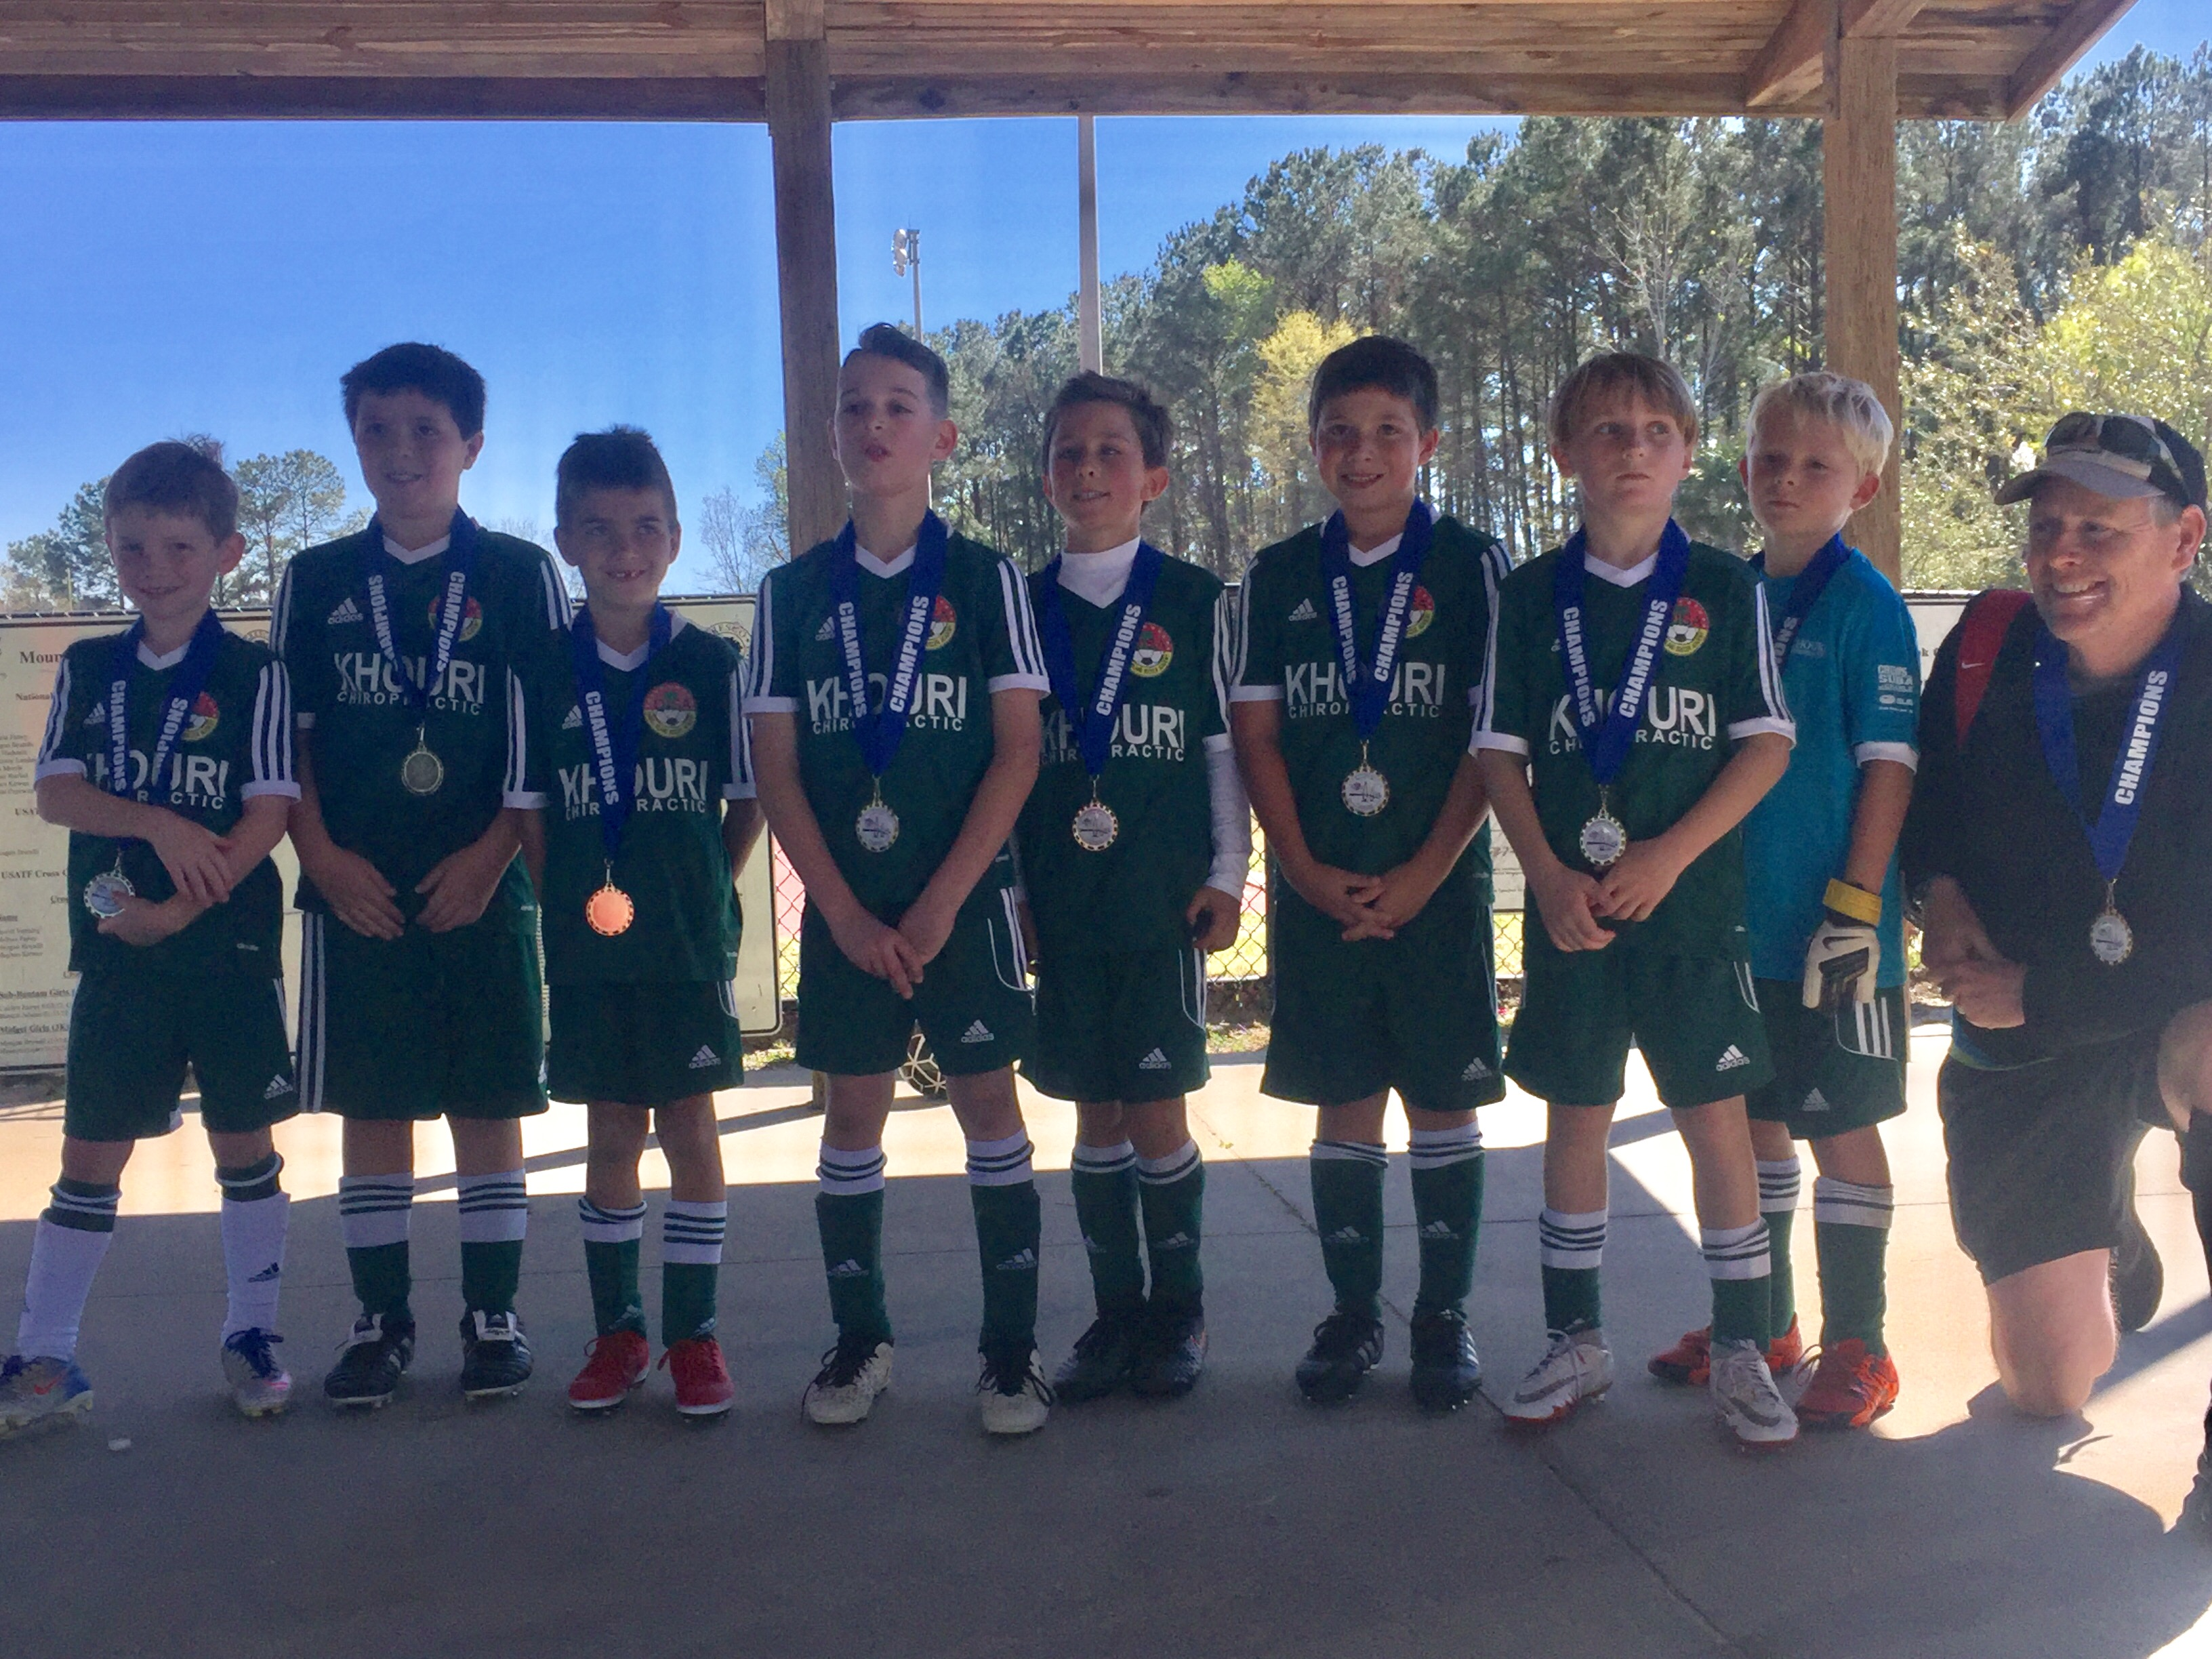 U9 Chelsea (DISA) Left to right: LJ Leveen, Hugh Mathews, Nate White, Sam Pesnik, Jackson Muller, Henley Mathews, Pierce Johnson, Logan Leddy, and Coach Hal Cauthen.